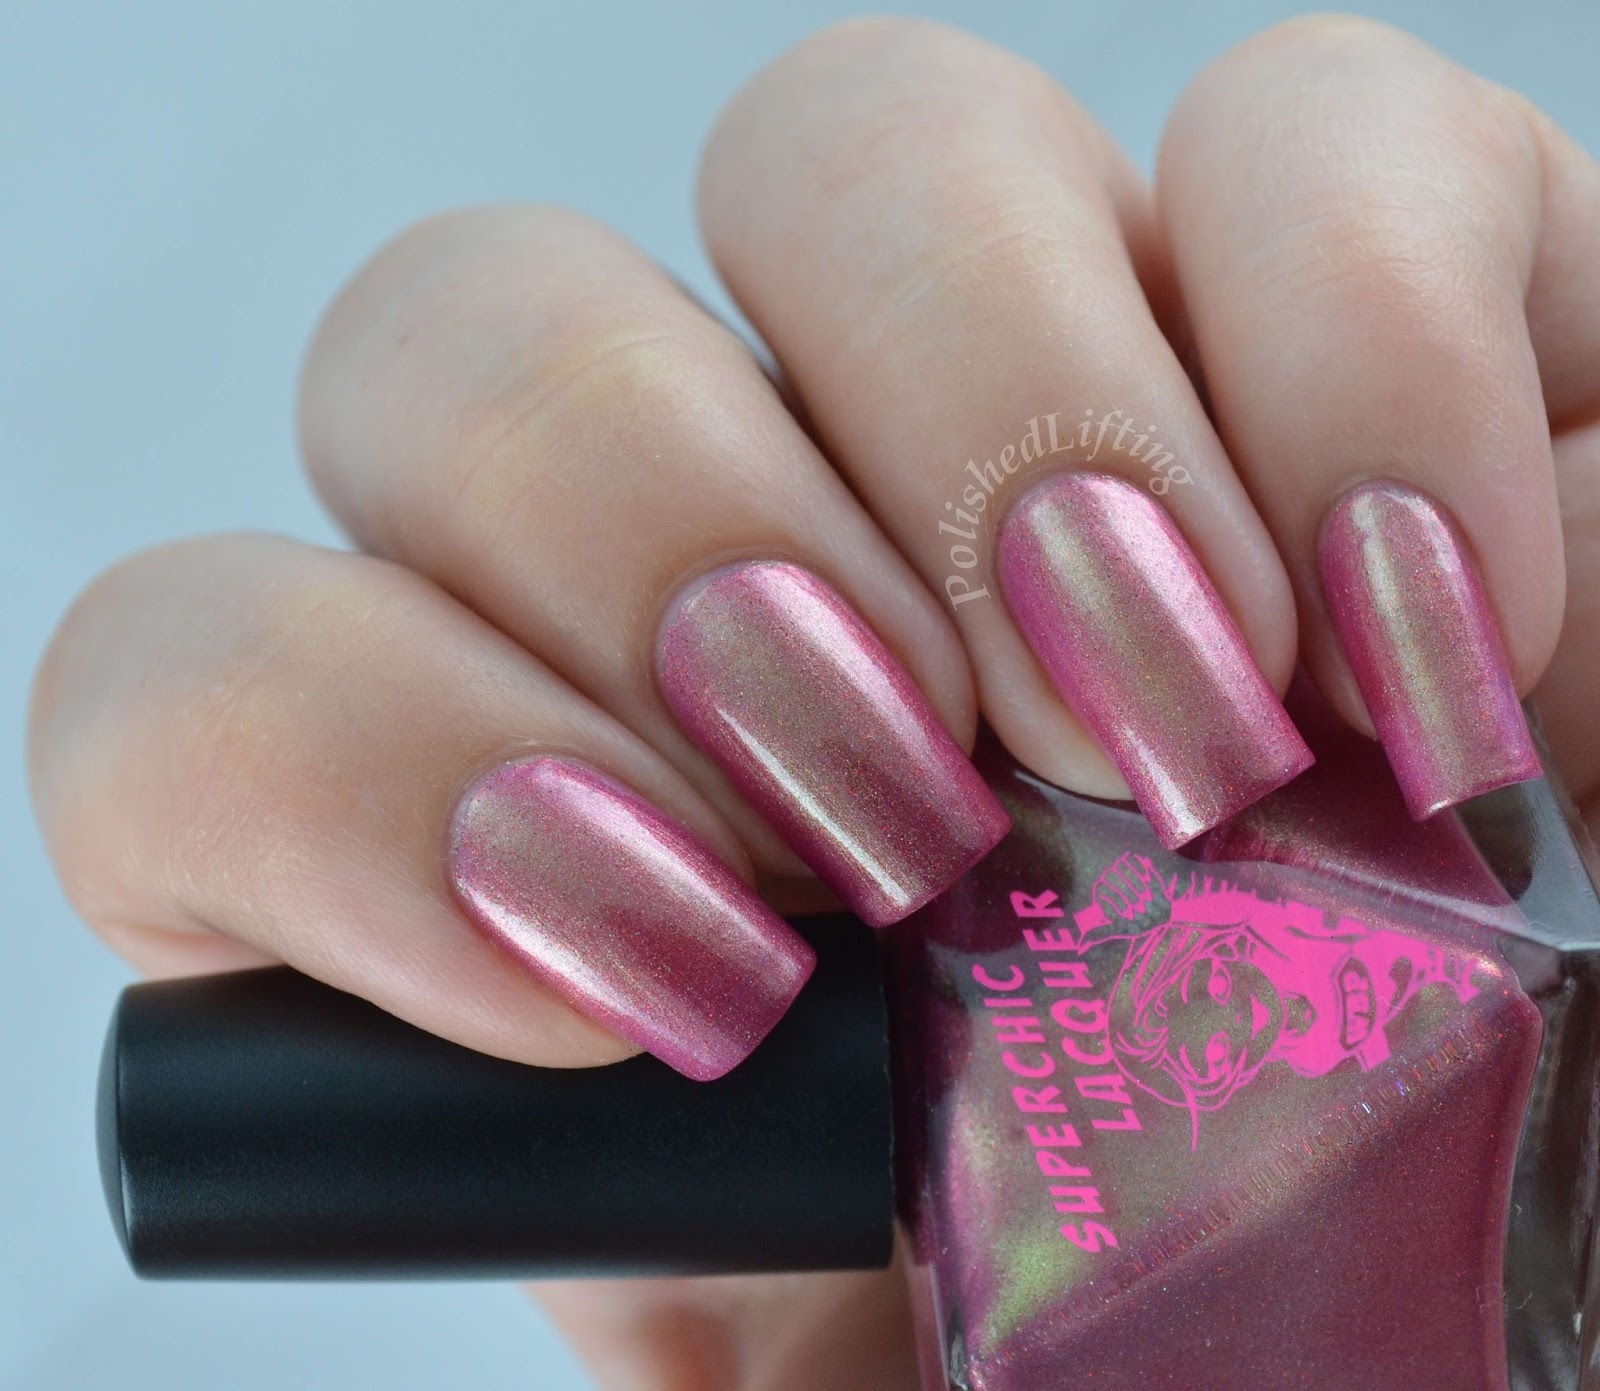 Superchic Lacquer Golden Delicious Curse